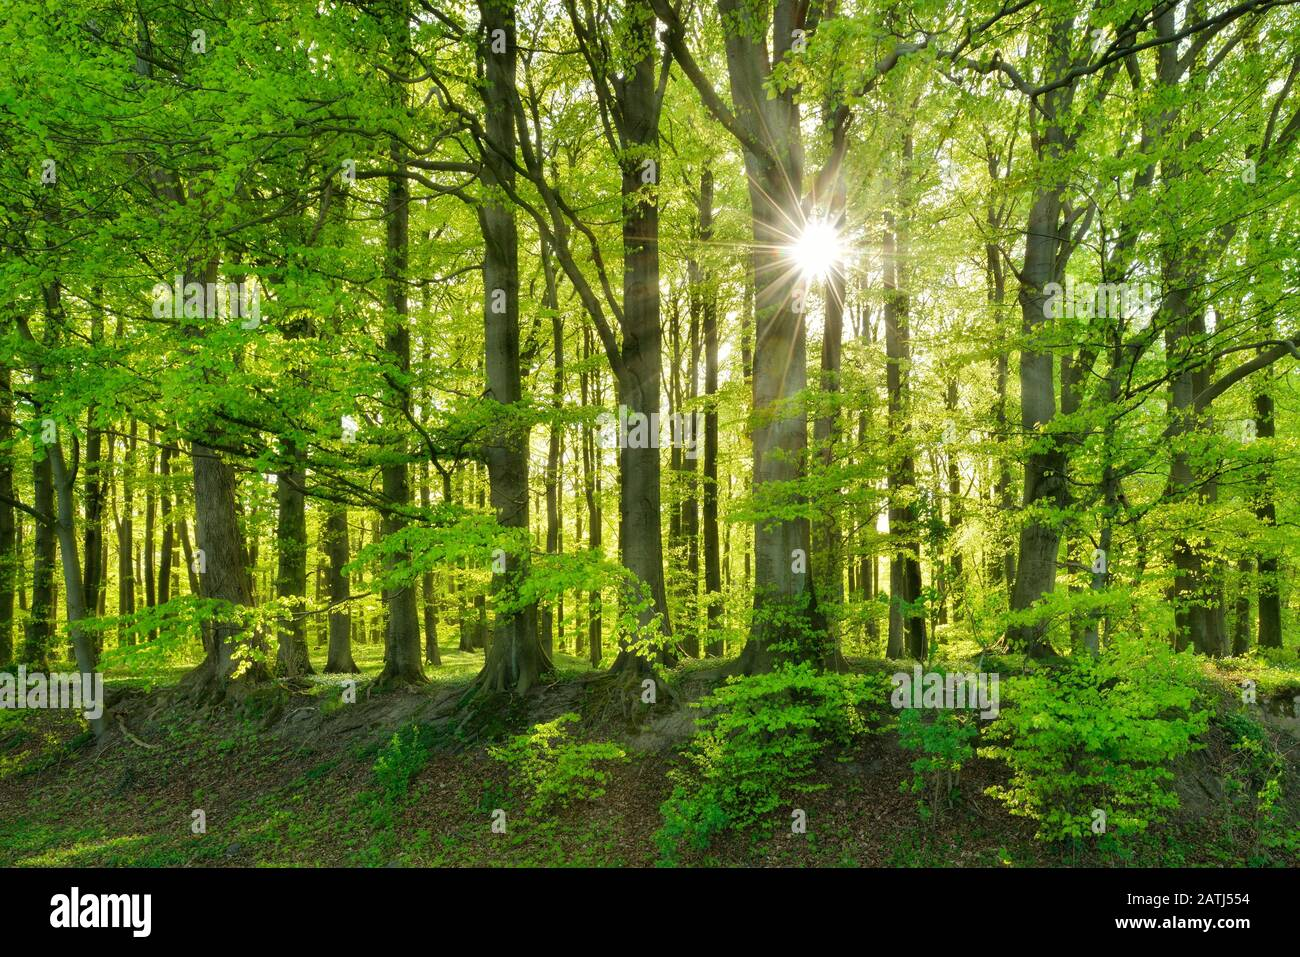 Natural Beeches forest (Fagus) in spring, sun shines through the foliage, Jasmund National Park, Ruegen Island, Mecklenburg-Western Pomerania, Germany Stock Photo